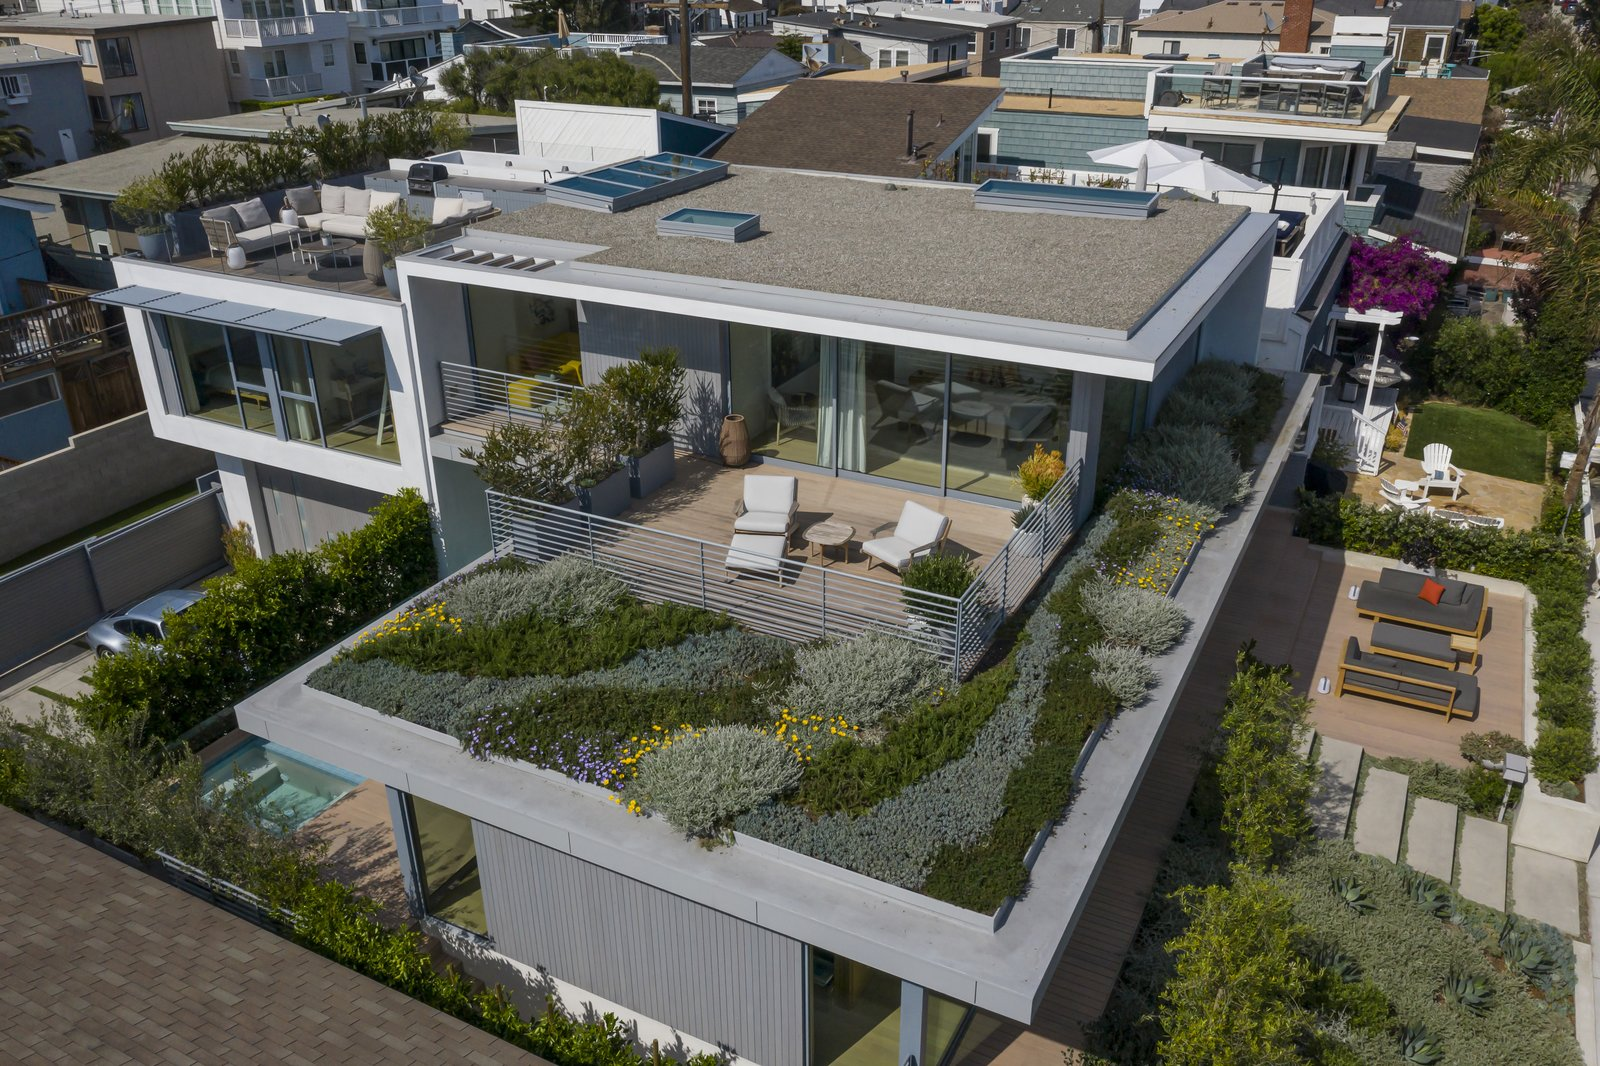 31st Street Residence by LM Design green roof